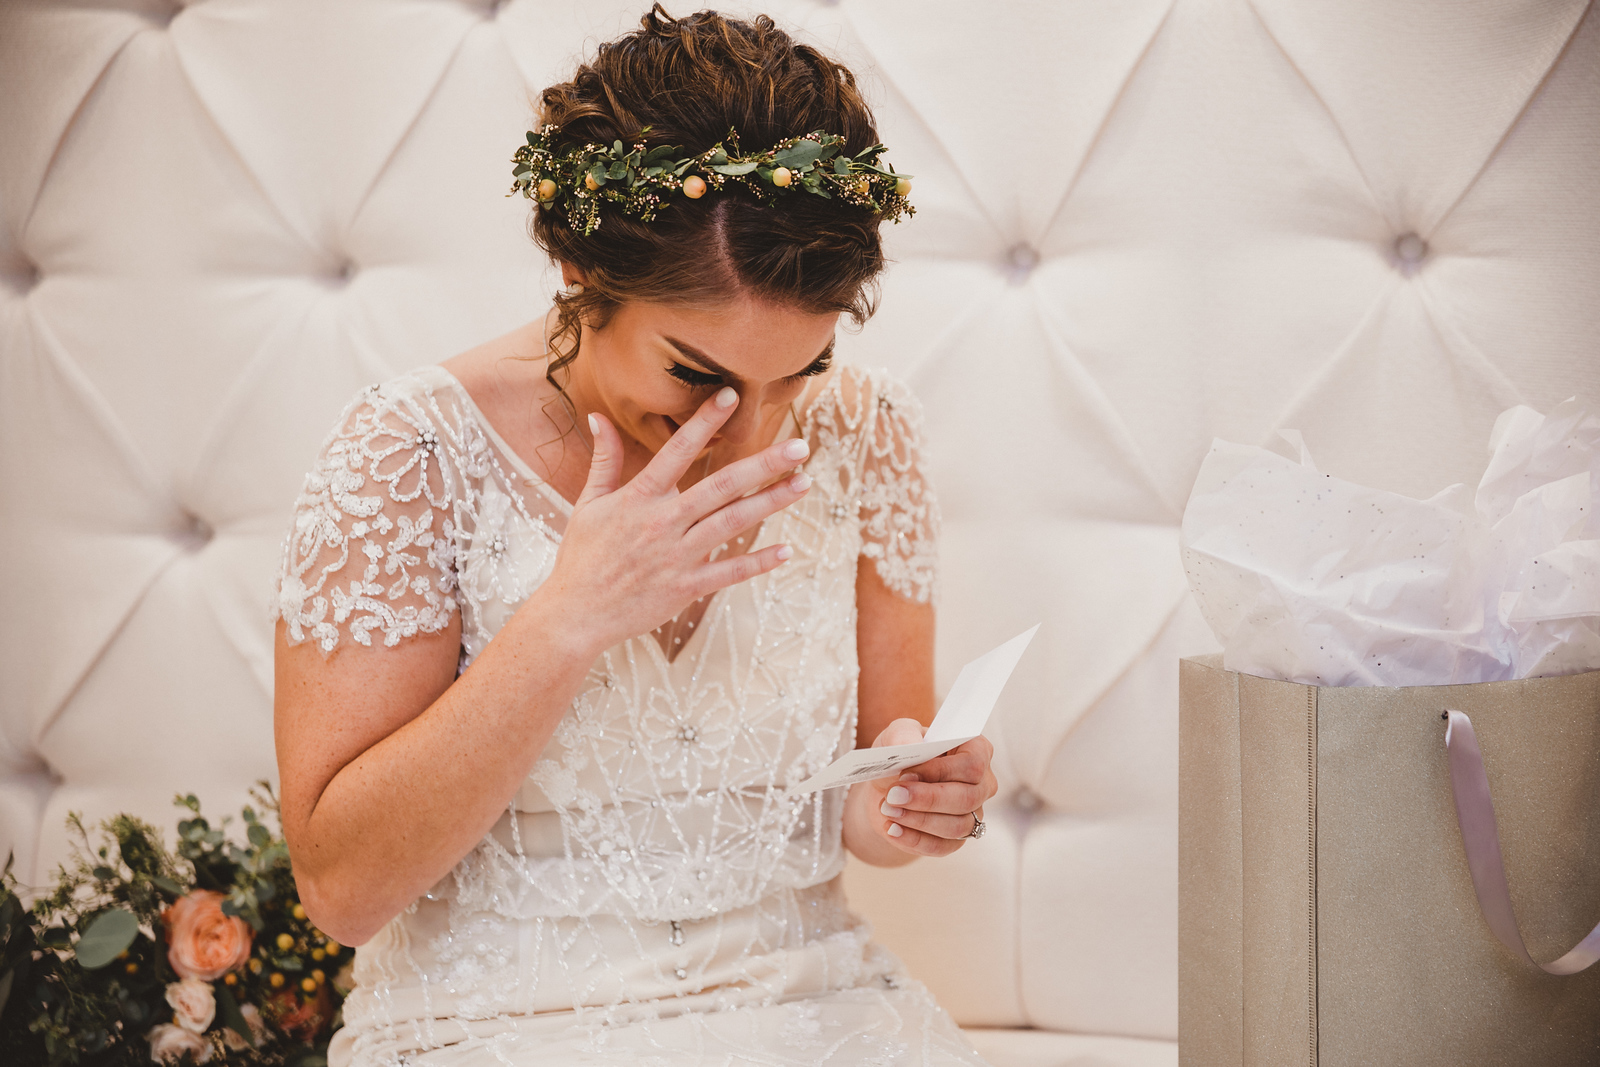 A bride reading a special note and tearing up